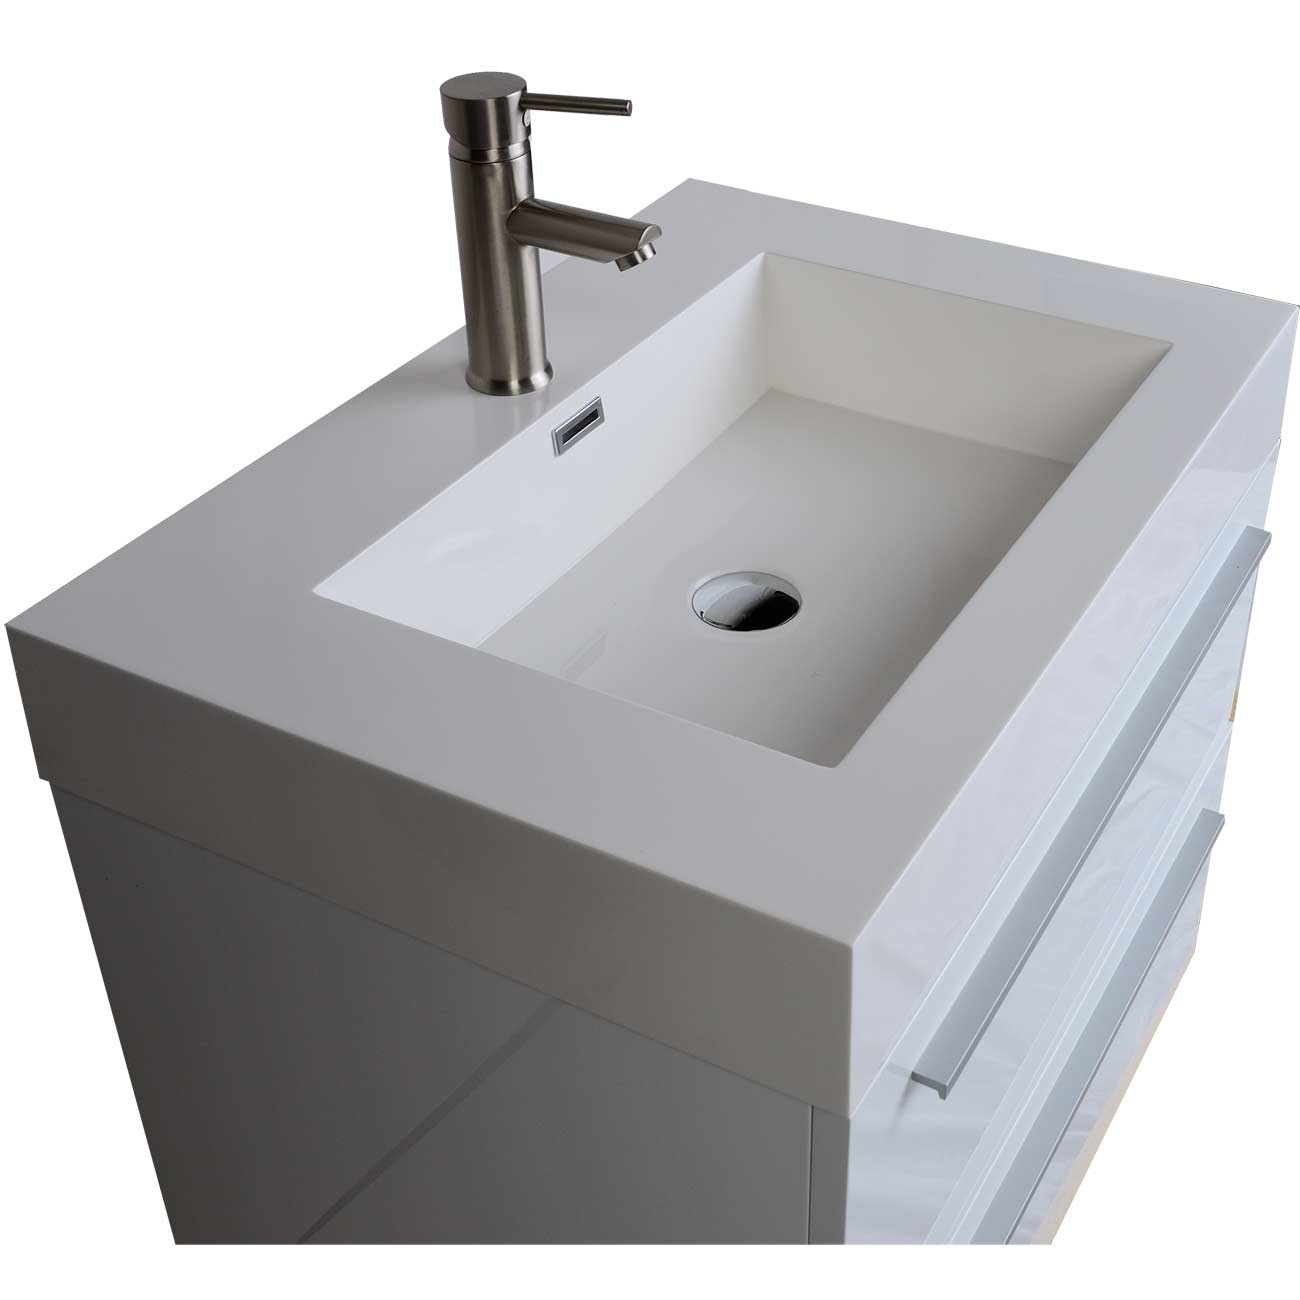 Buy in single bathroom vanity set in high gloss for Bathroom vanities